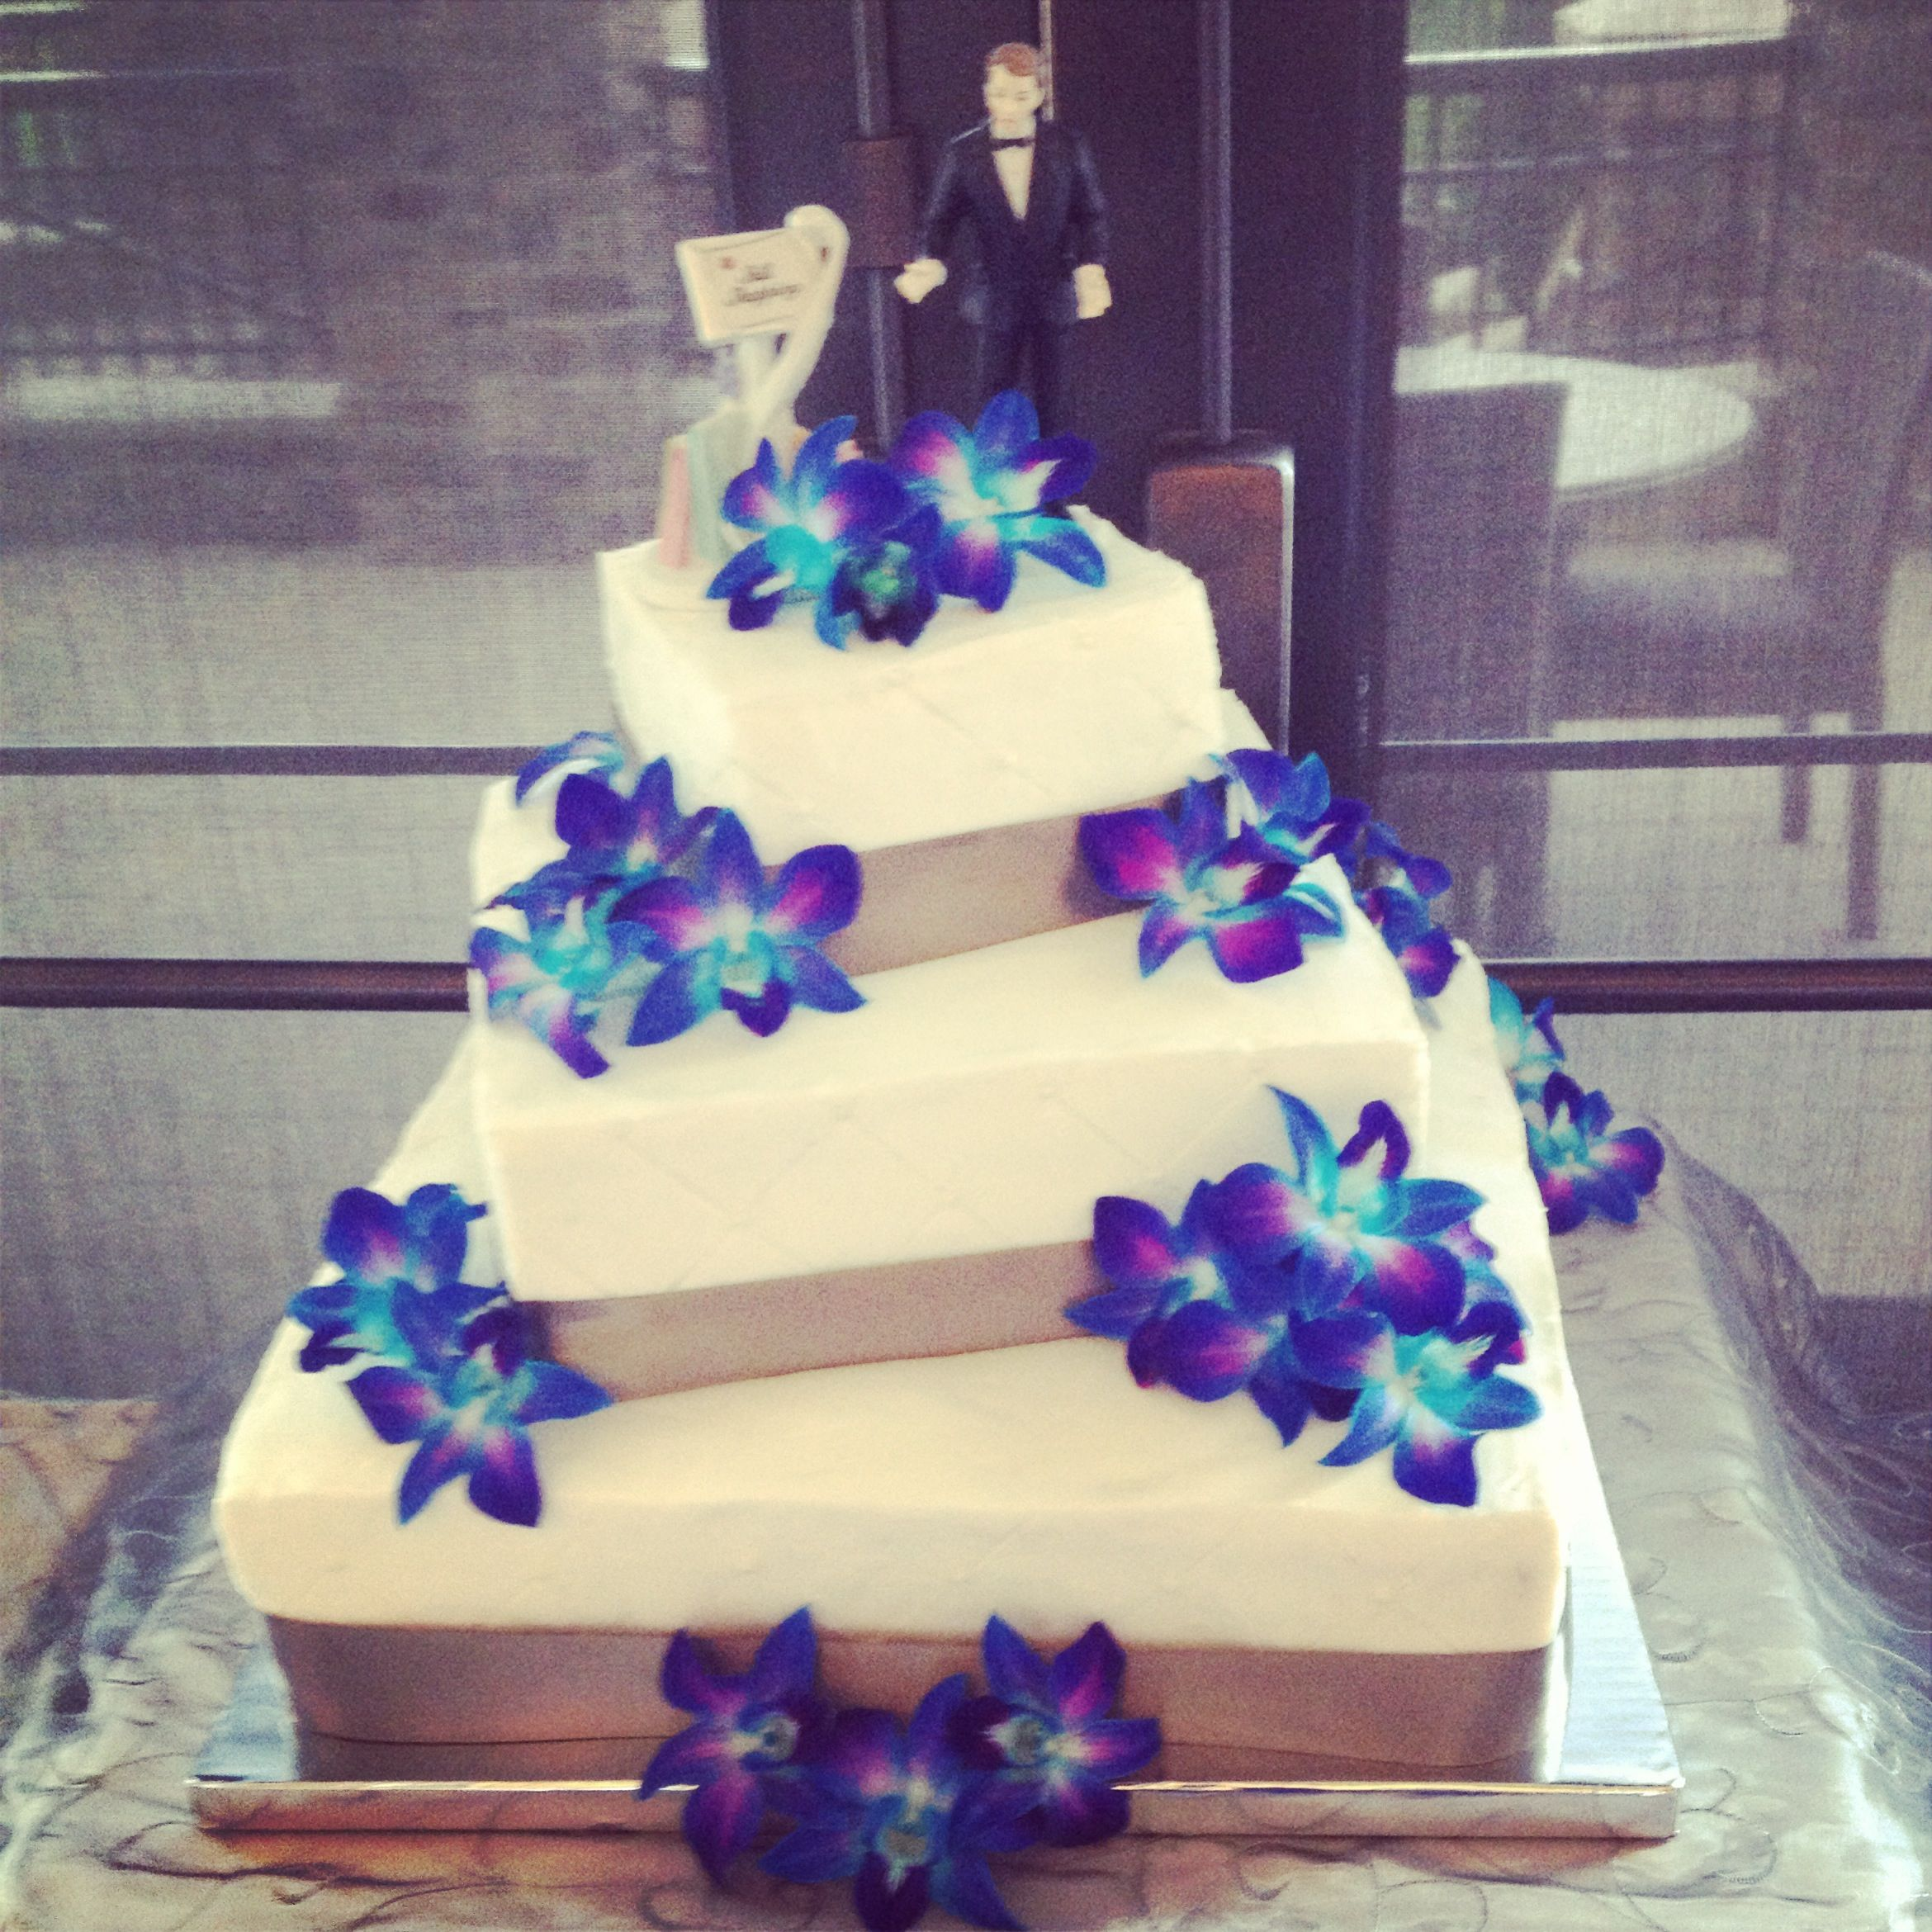 3 Tier 6 Layer Wedding Cake With Blue Orchids By Anna Payne With